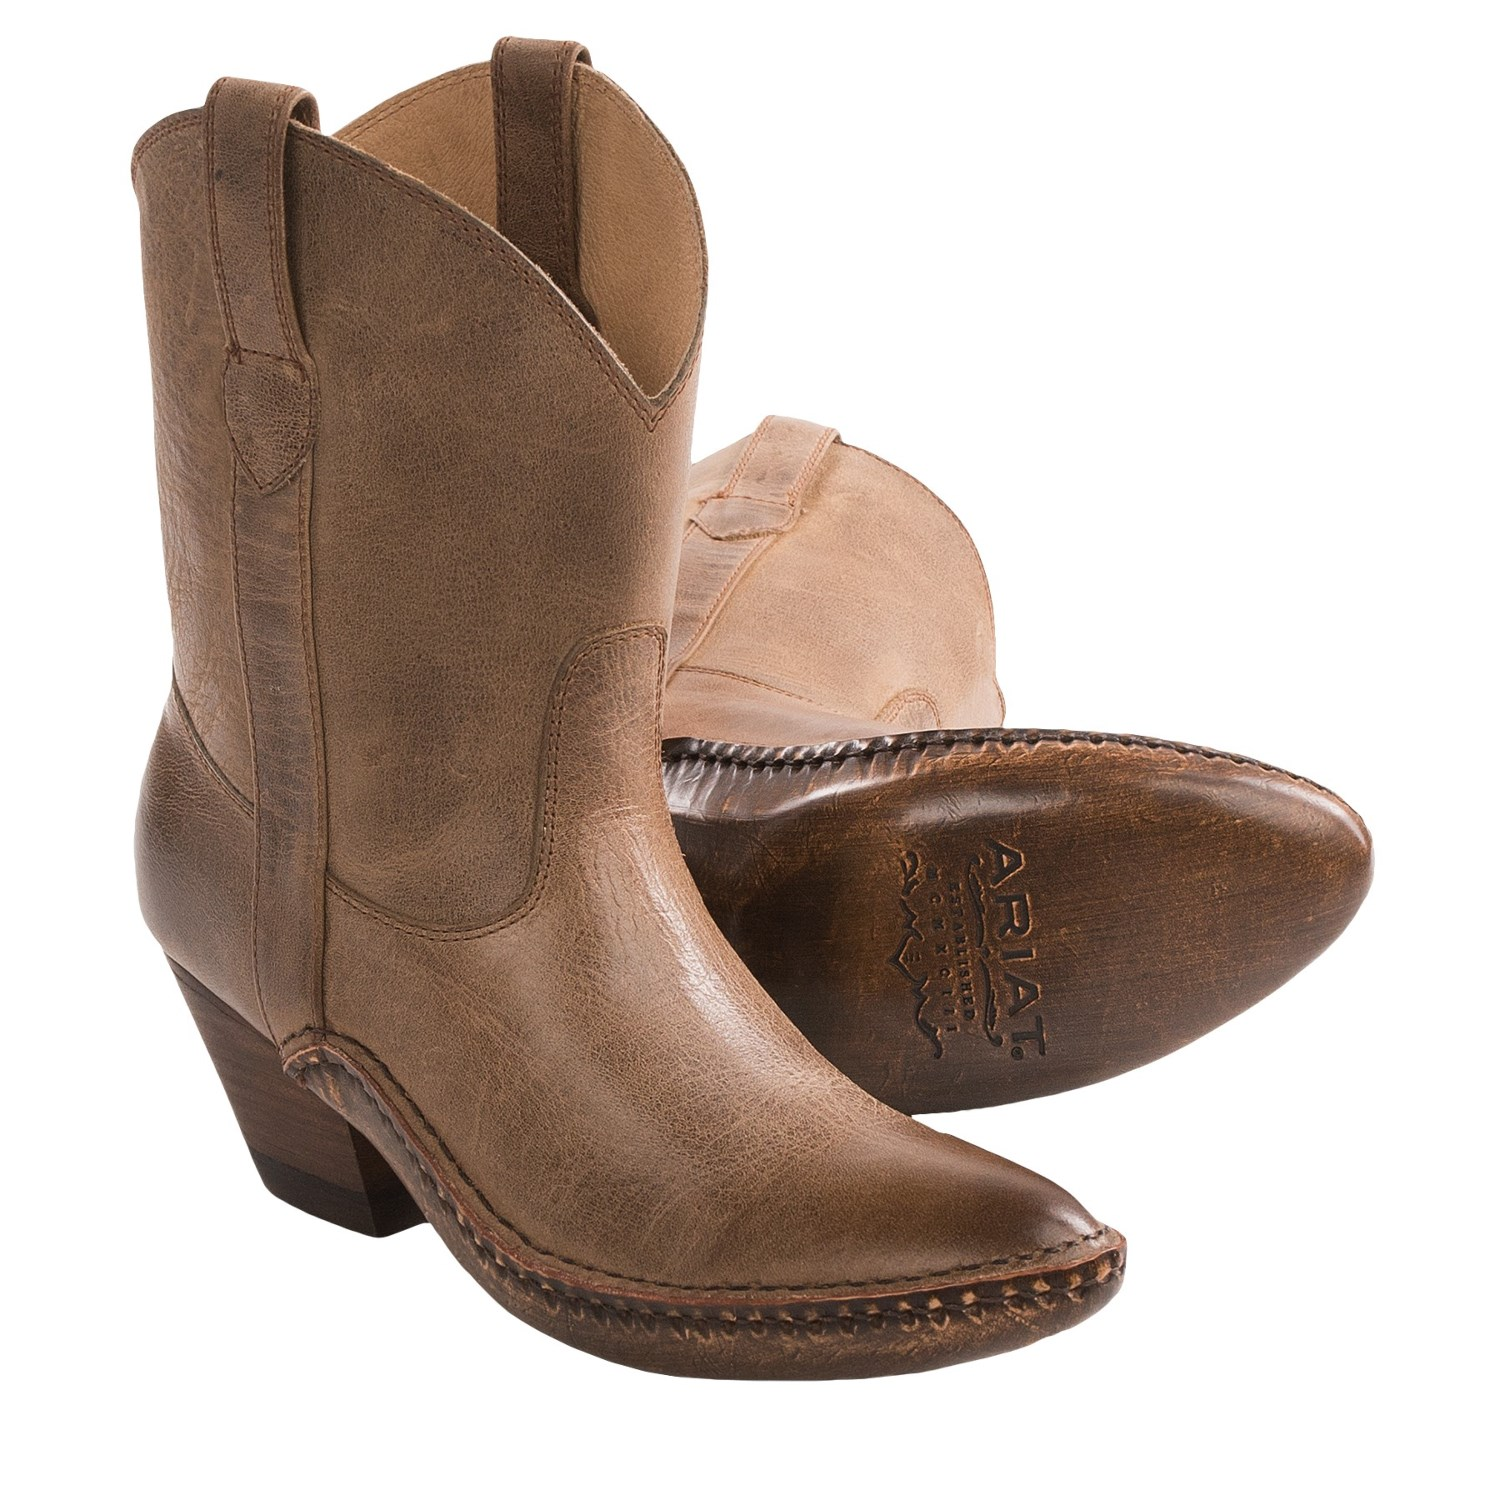 Womens Leather Boots Clearance 39